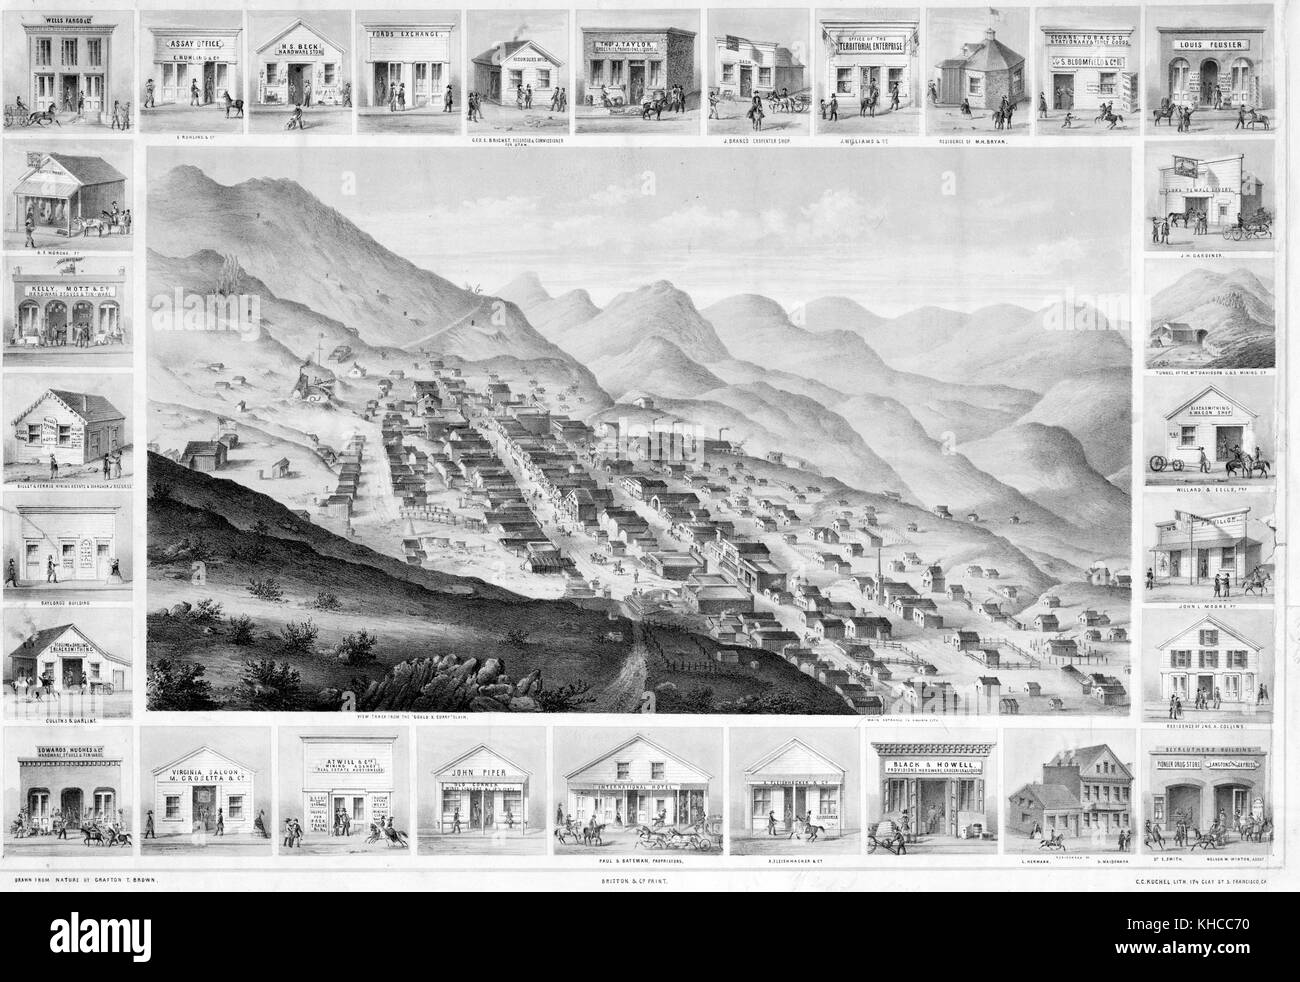 An engraving from an illustration of Virginia City as seen from above, several dozen buildings can be seen among - Stock Image